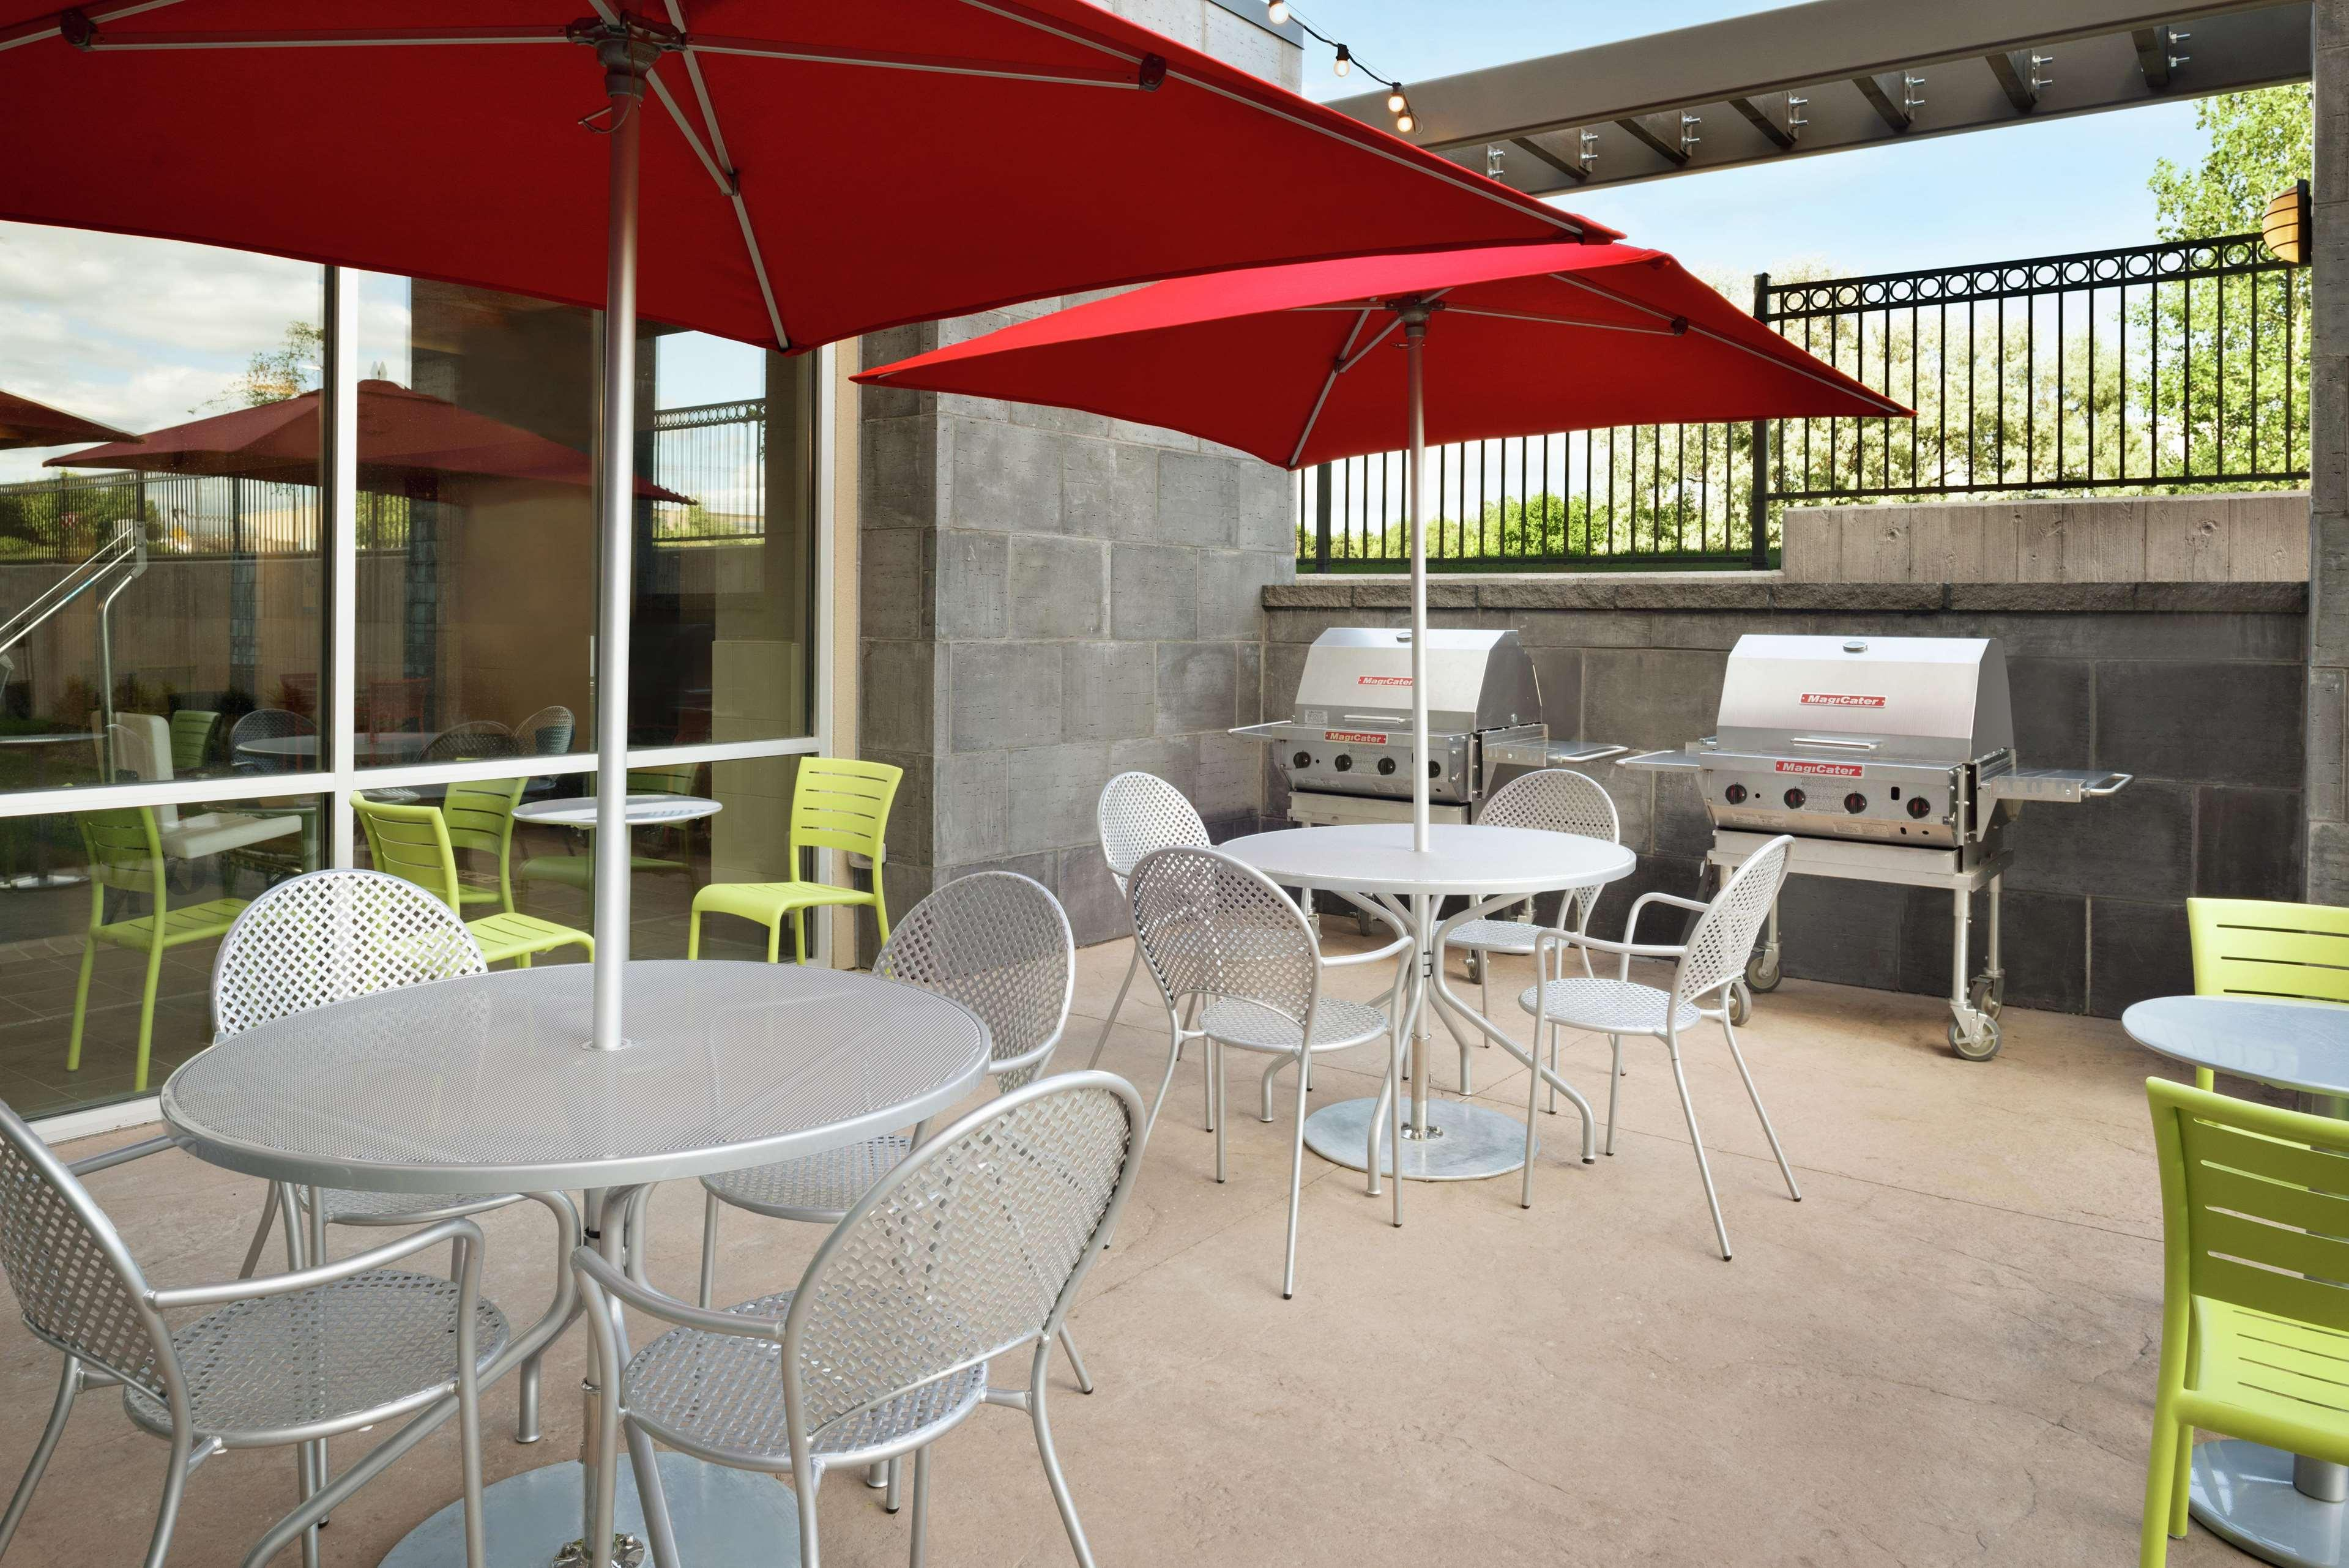 Home2 Suites by Hilton Minneapolis / Roseville, MN, Ramsey